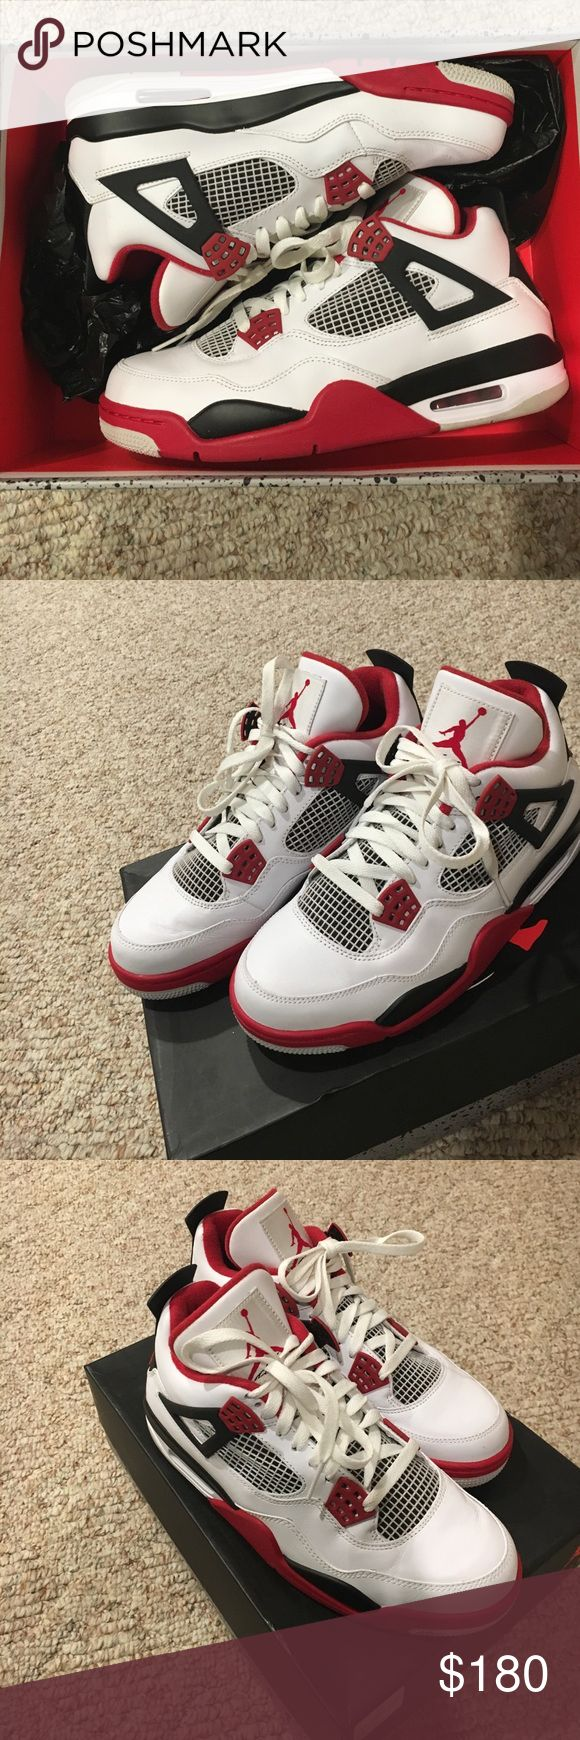 Air Jordan Retro 4s Air Jordan Retro 4's in great condition. Men's size 8.5 PRICE FIRM Jordan Shoes Sneakers